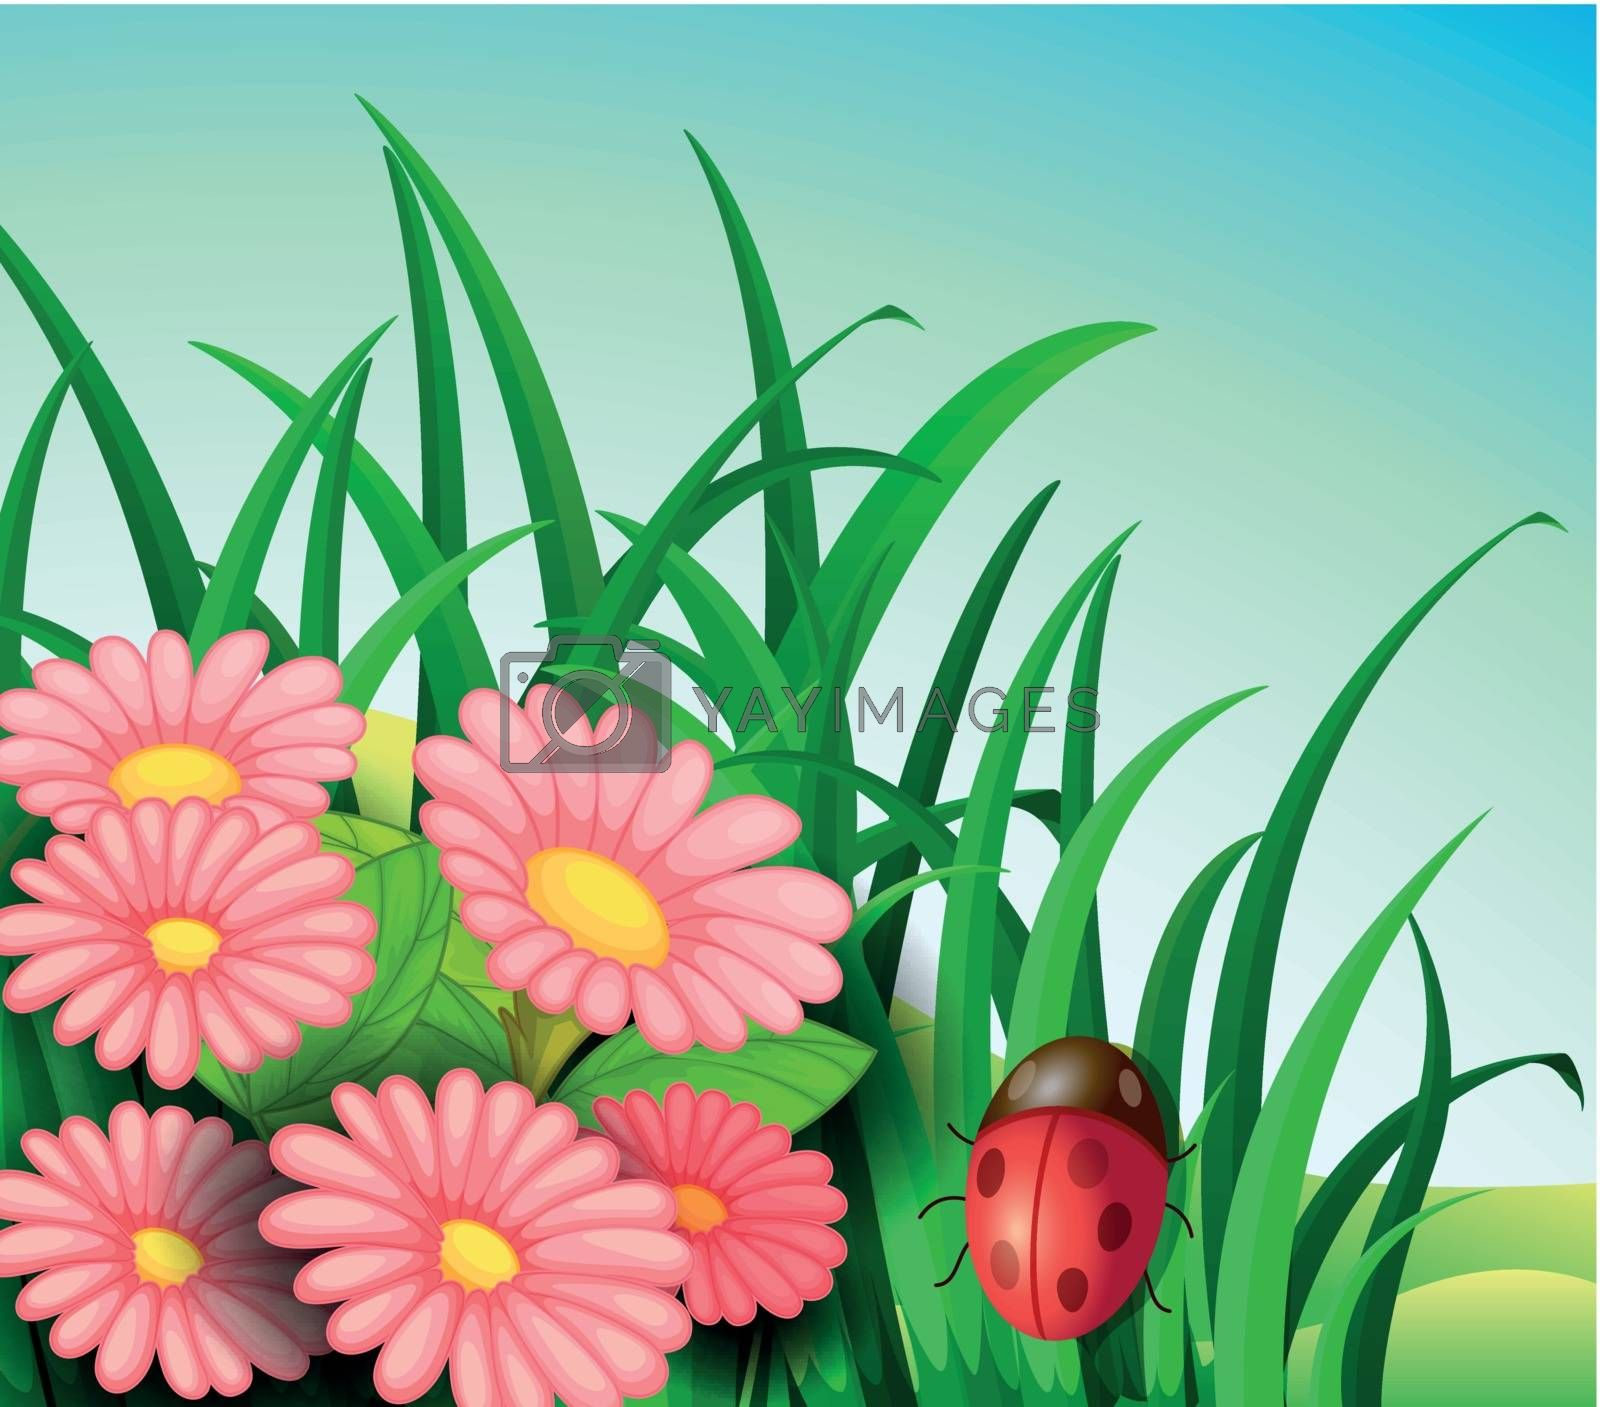 Illustration of a ladybug in the garden with pink flowers